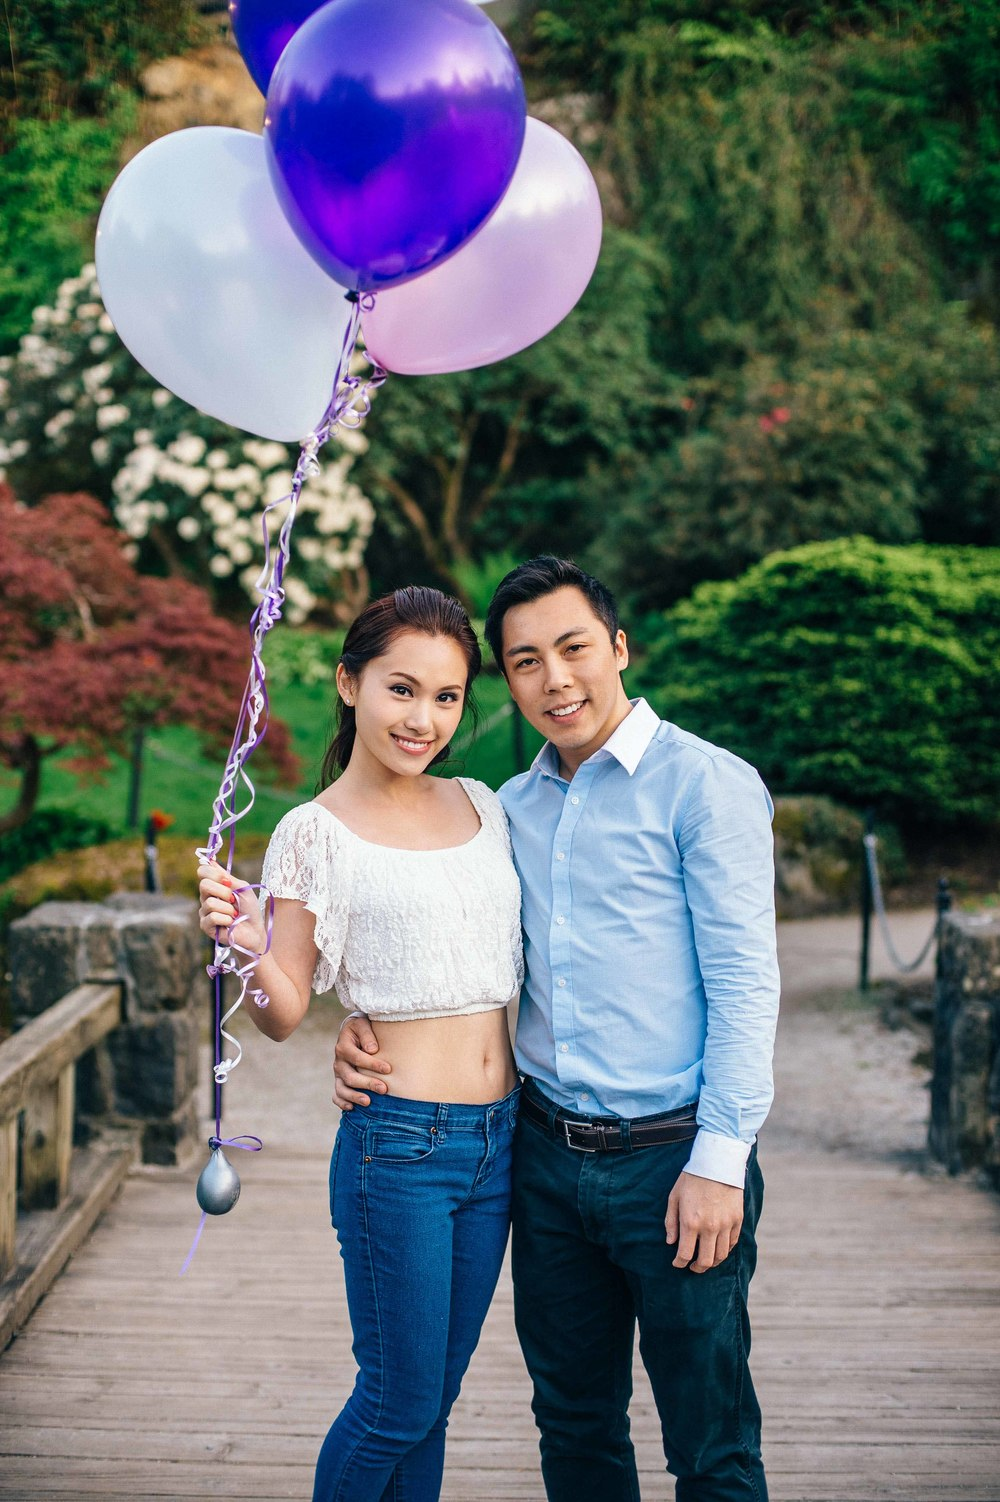 Vancouver Queen Elizabeth Park engagement photography edward lai-3.jpg